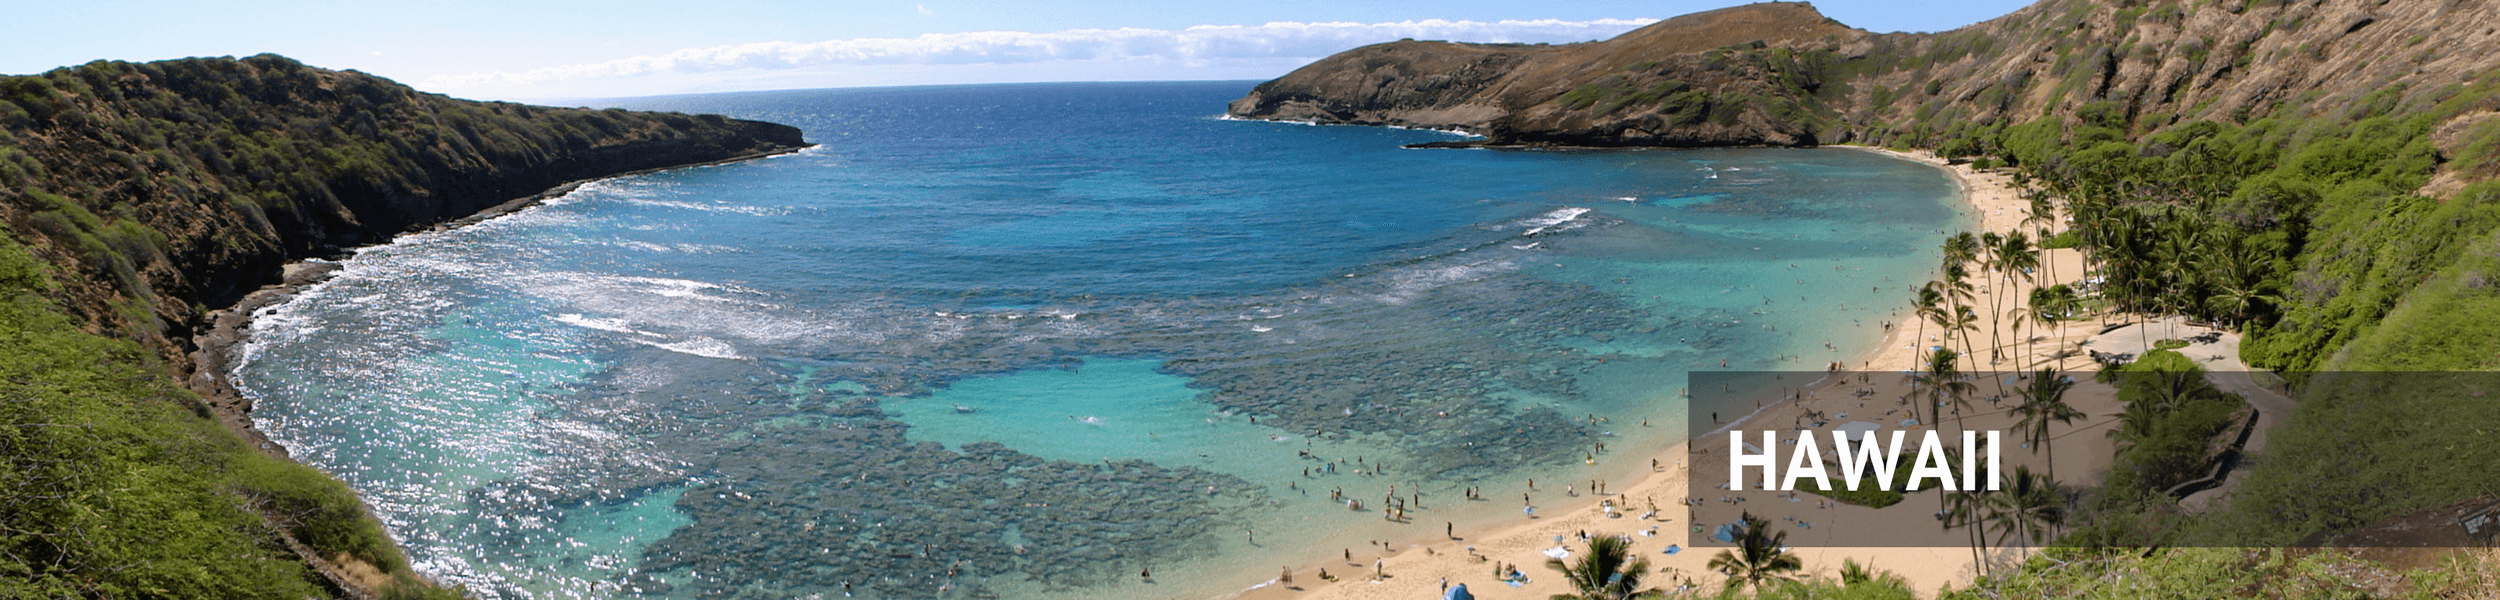 Best beaches in Oahu Hawaii